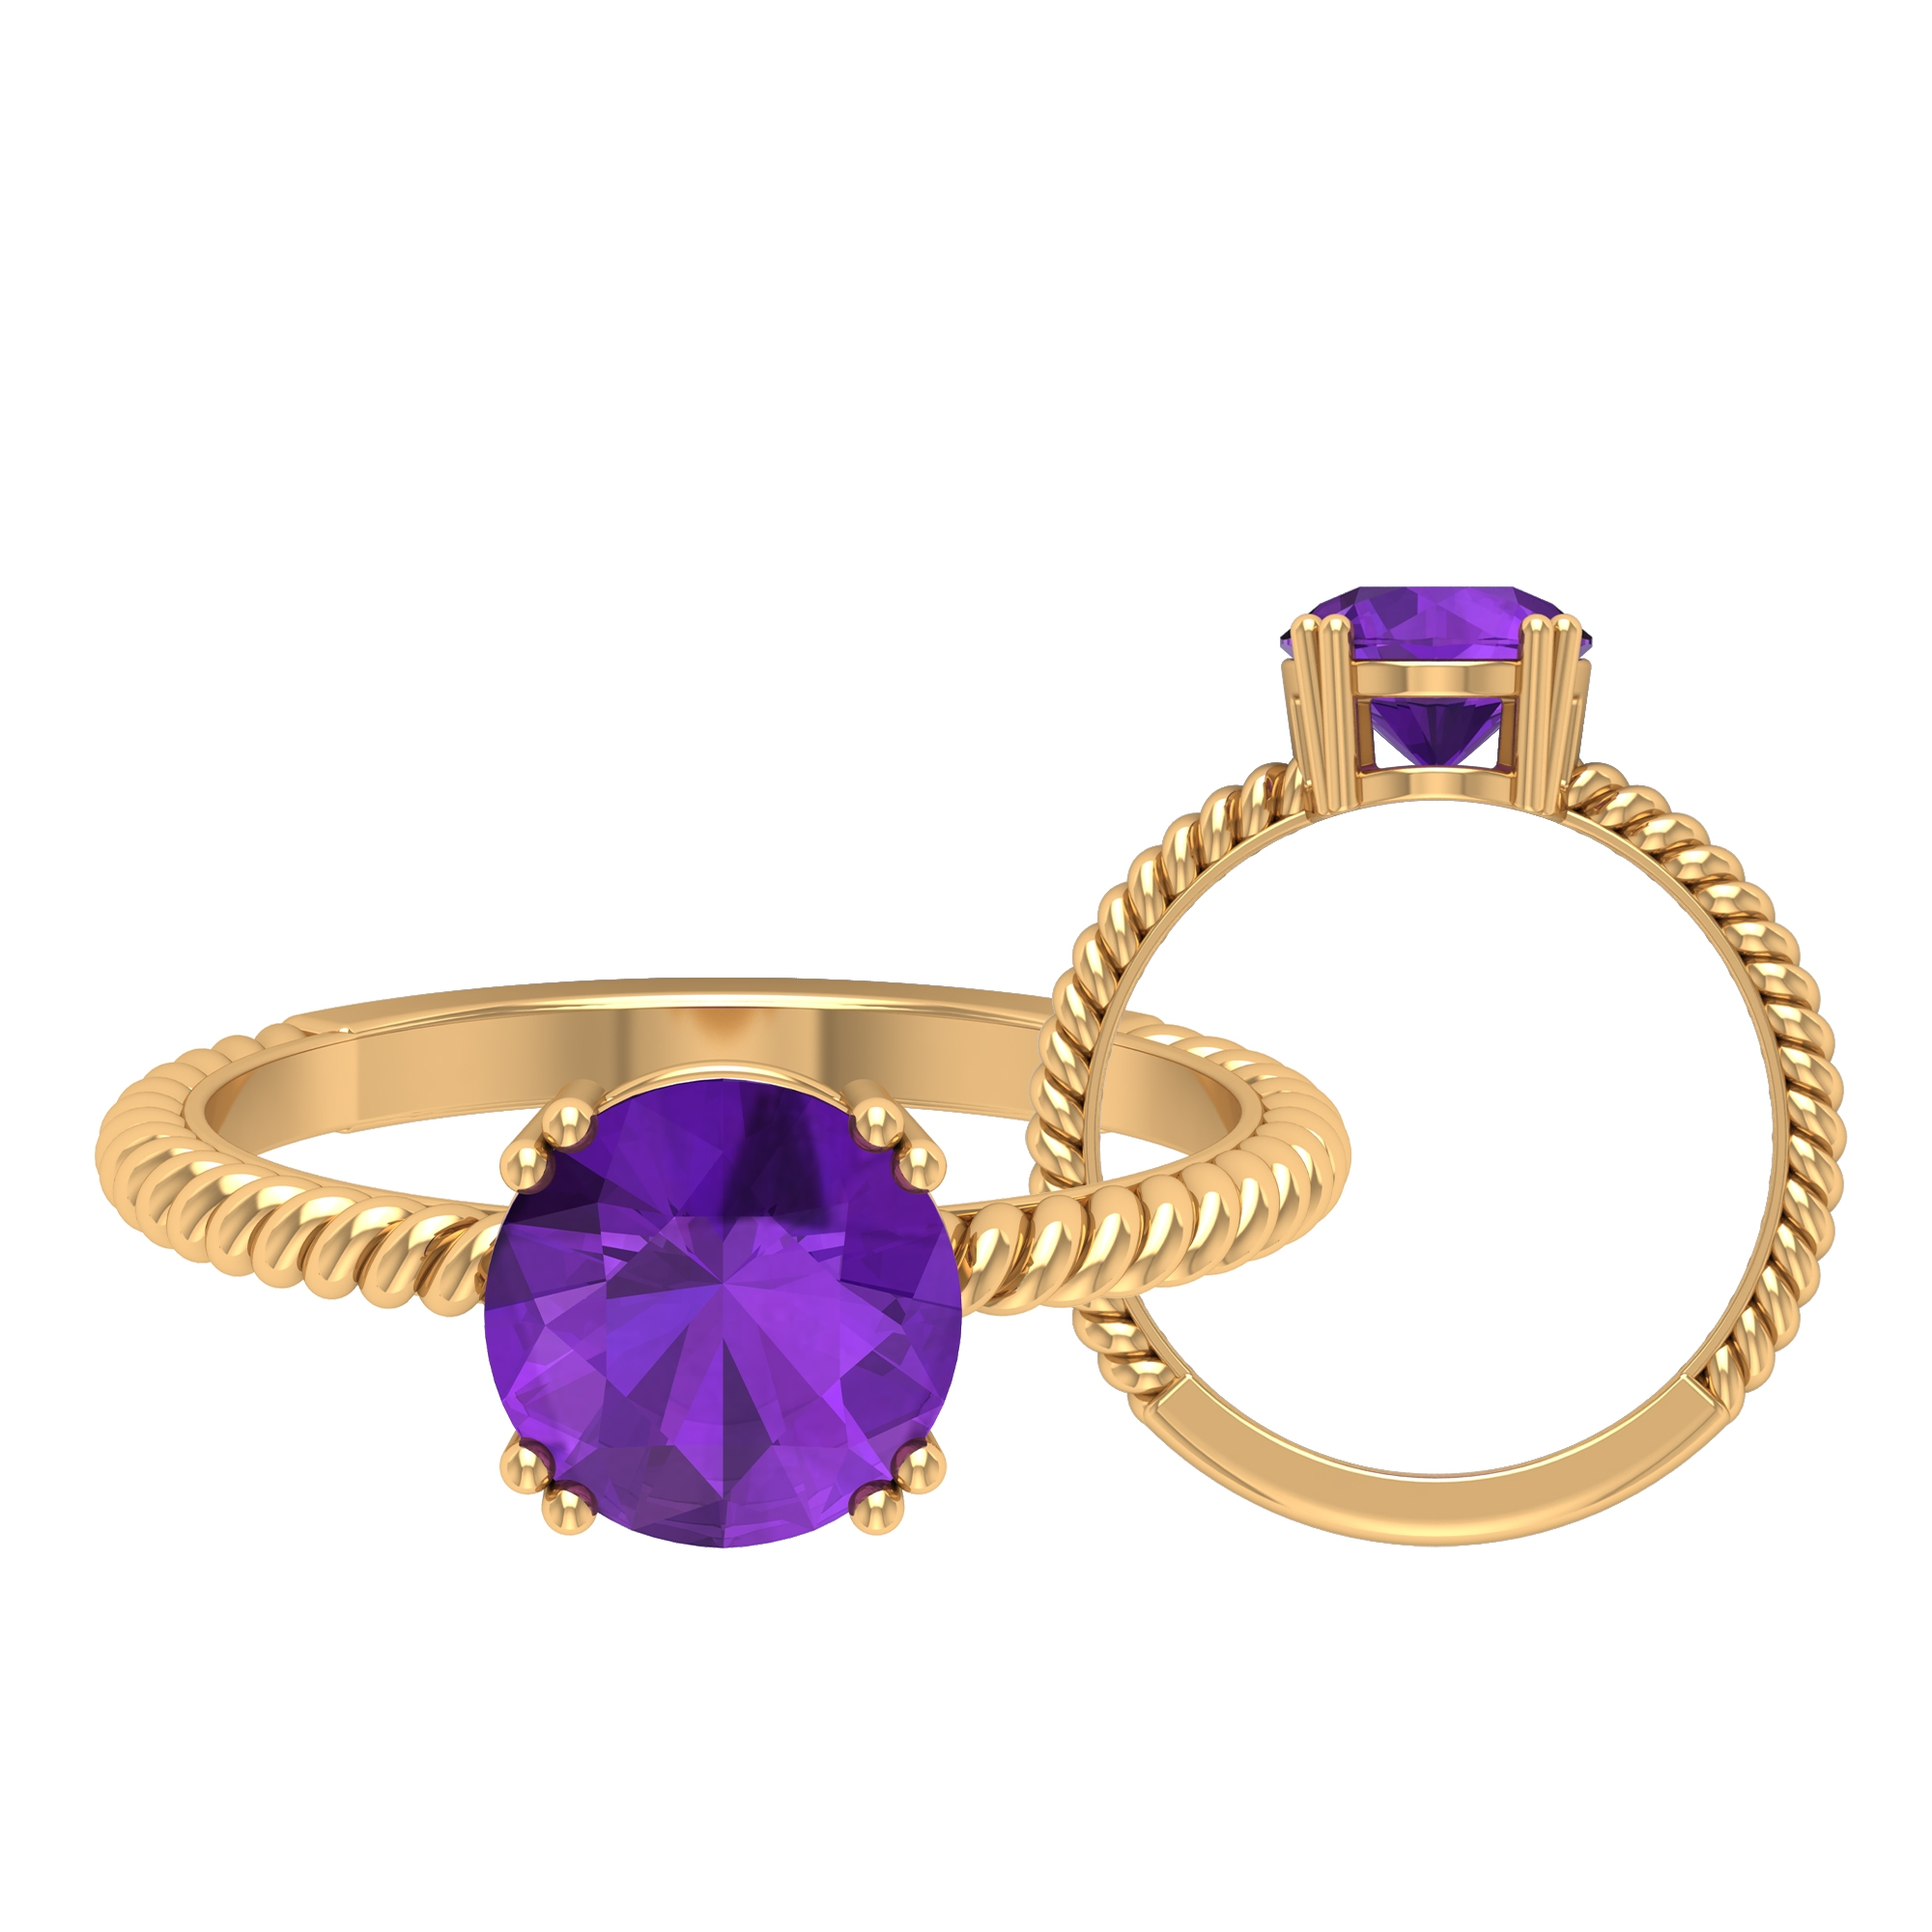 8 MM Round Shape Solitaire Amethyst Ring in Double Prong Setting with Twisted Rope Detail